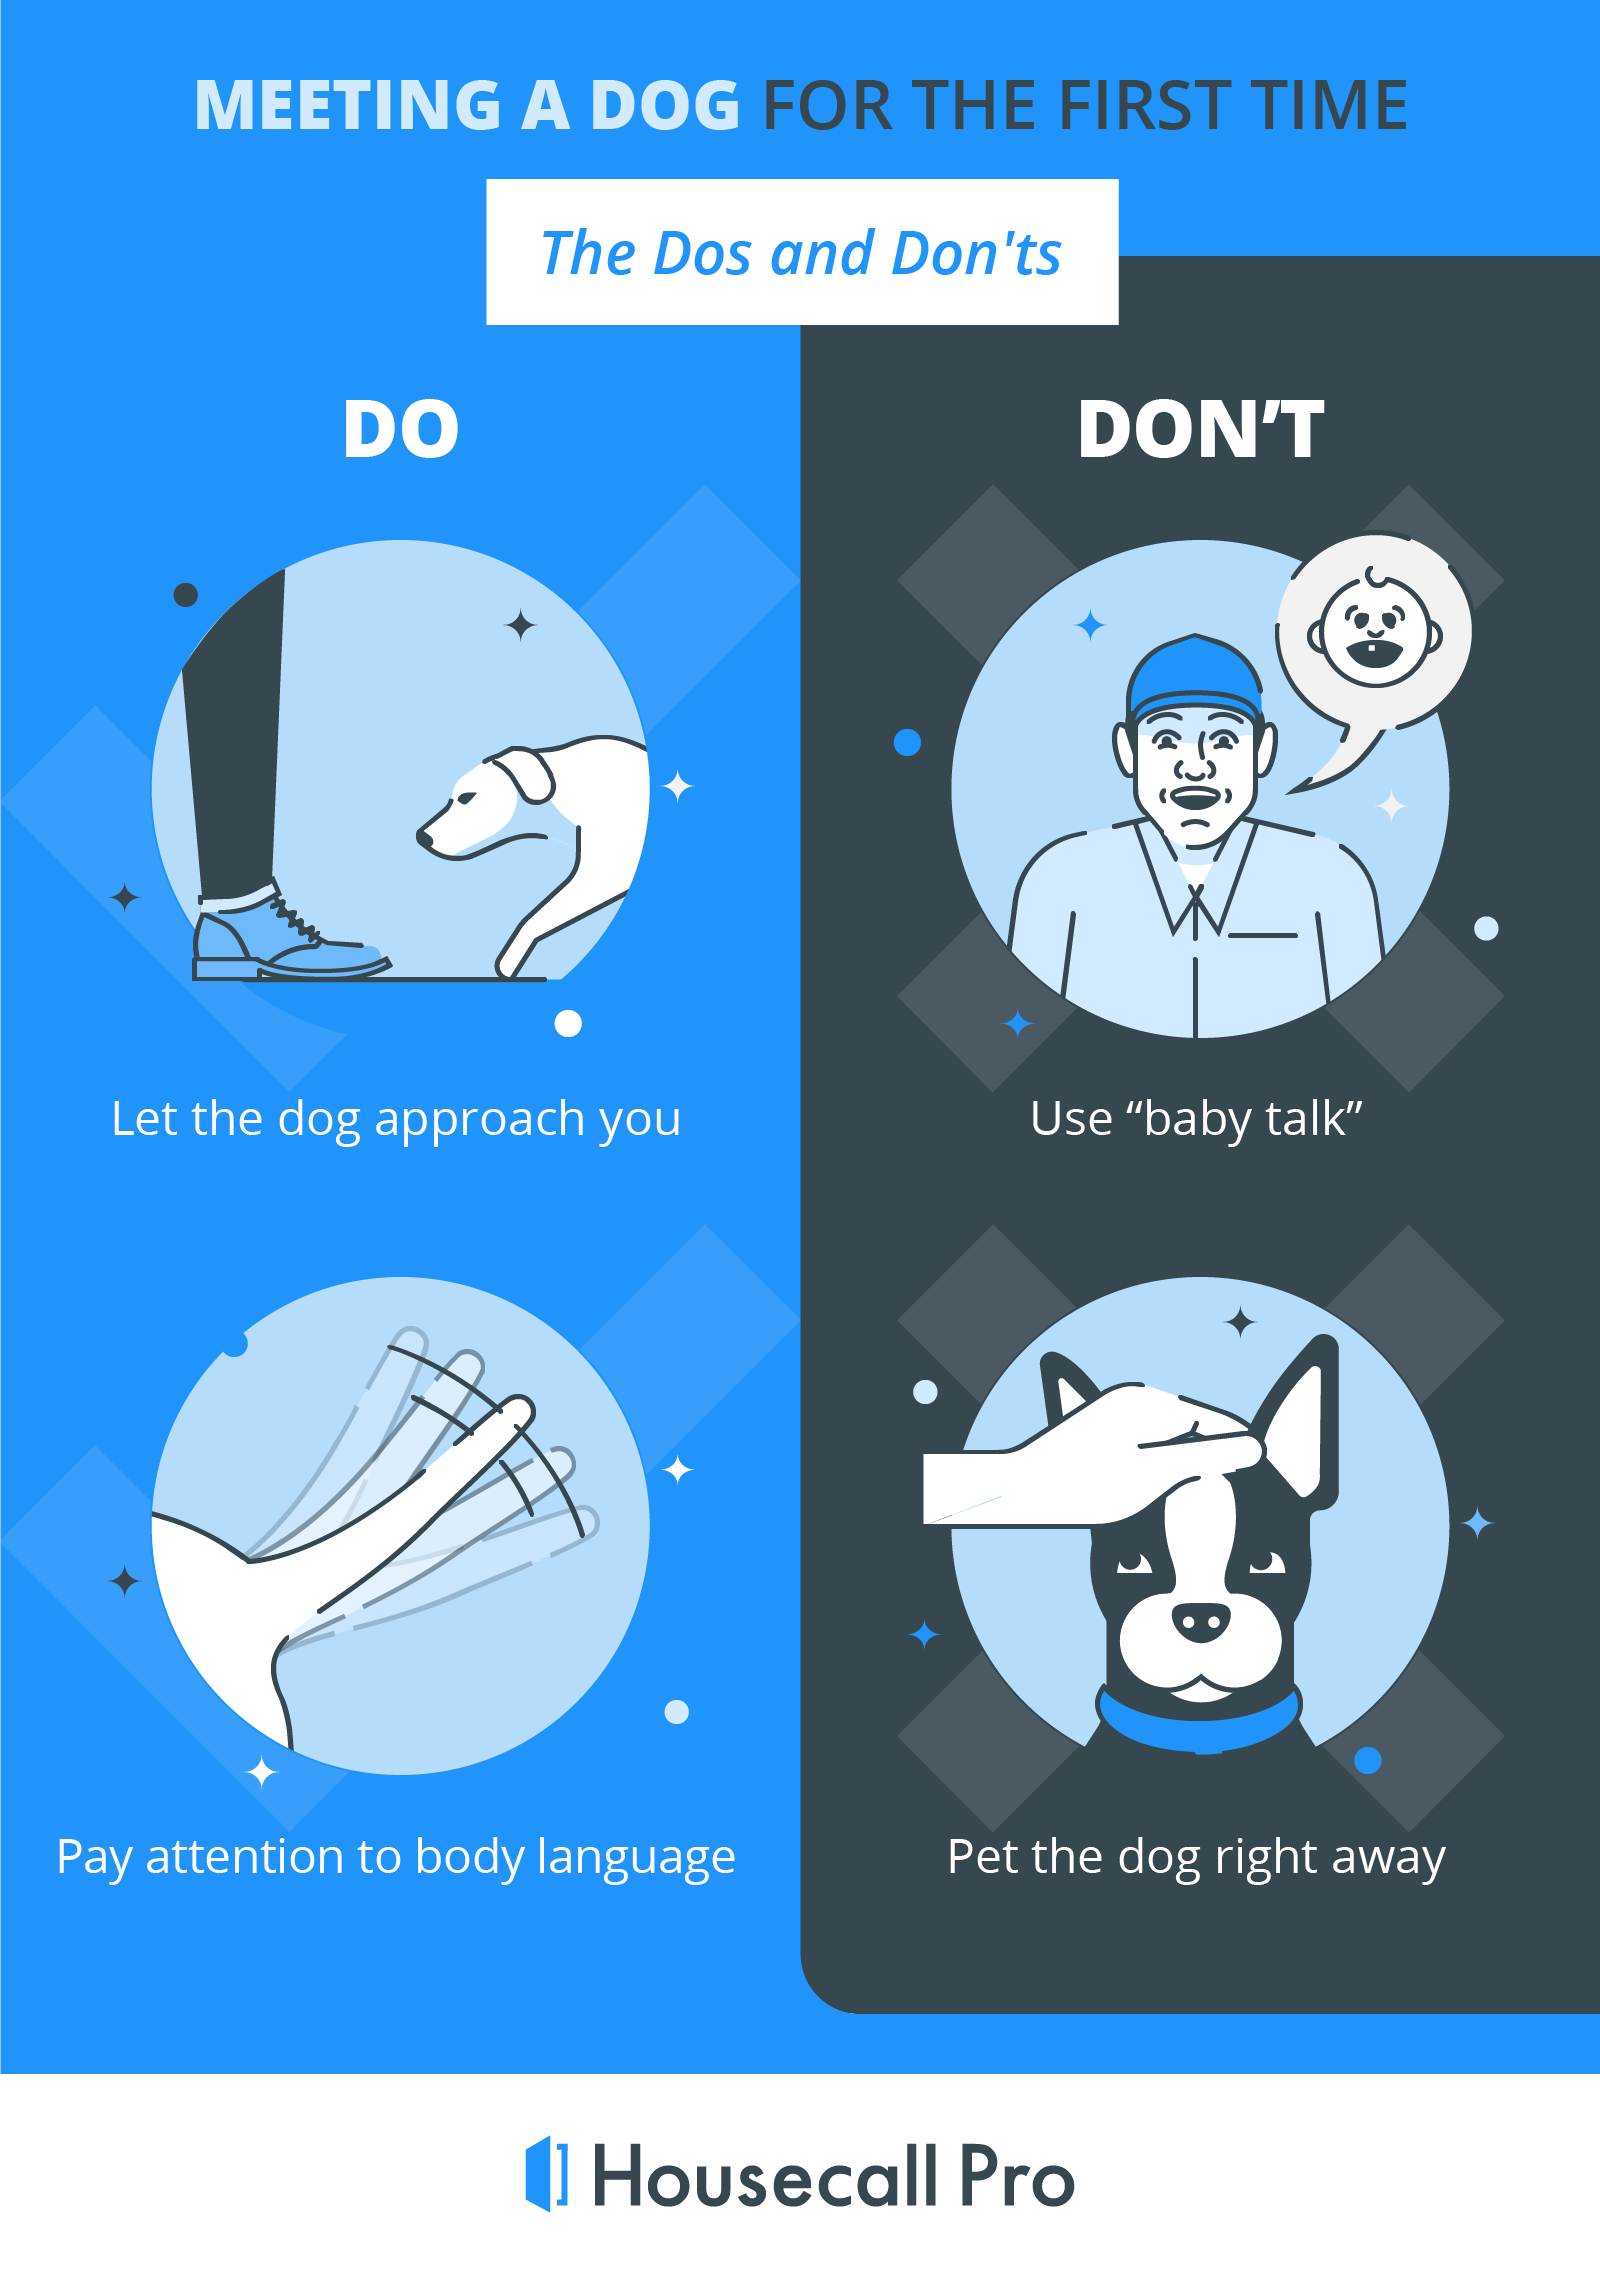 the do's and don'ts for introducing a dog to a visitor or service provider